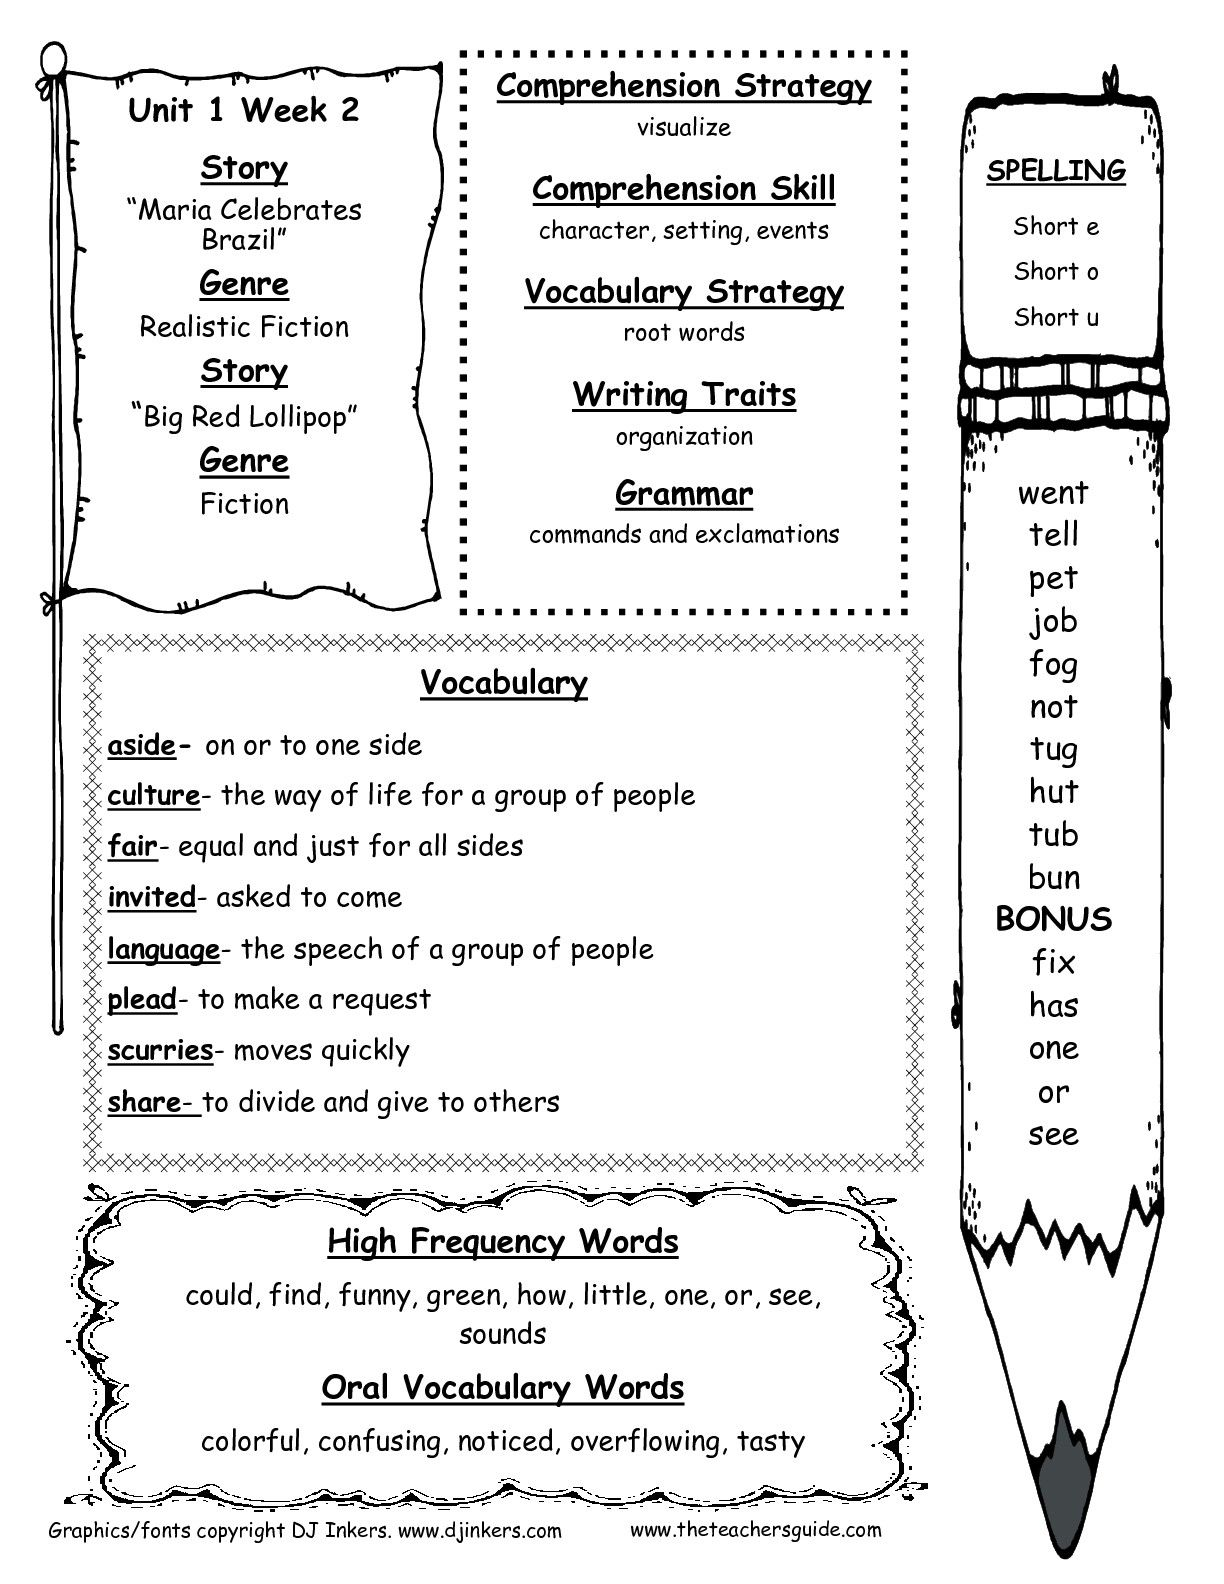 Worksheets Character And Setting Worksheets mcgraw hill wonders second grade resources and printouts lilians printouts